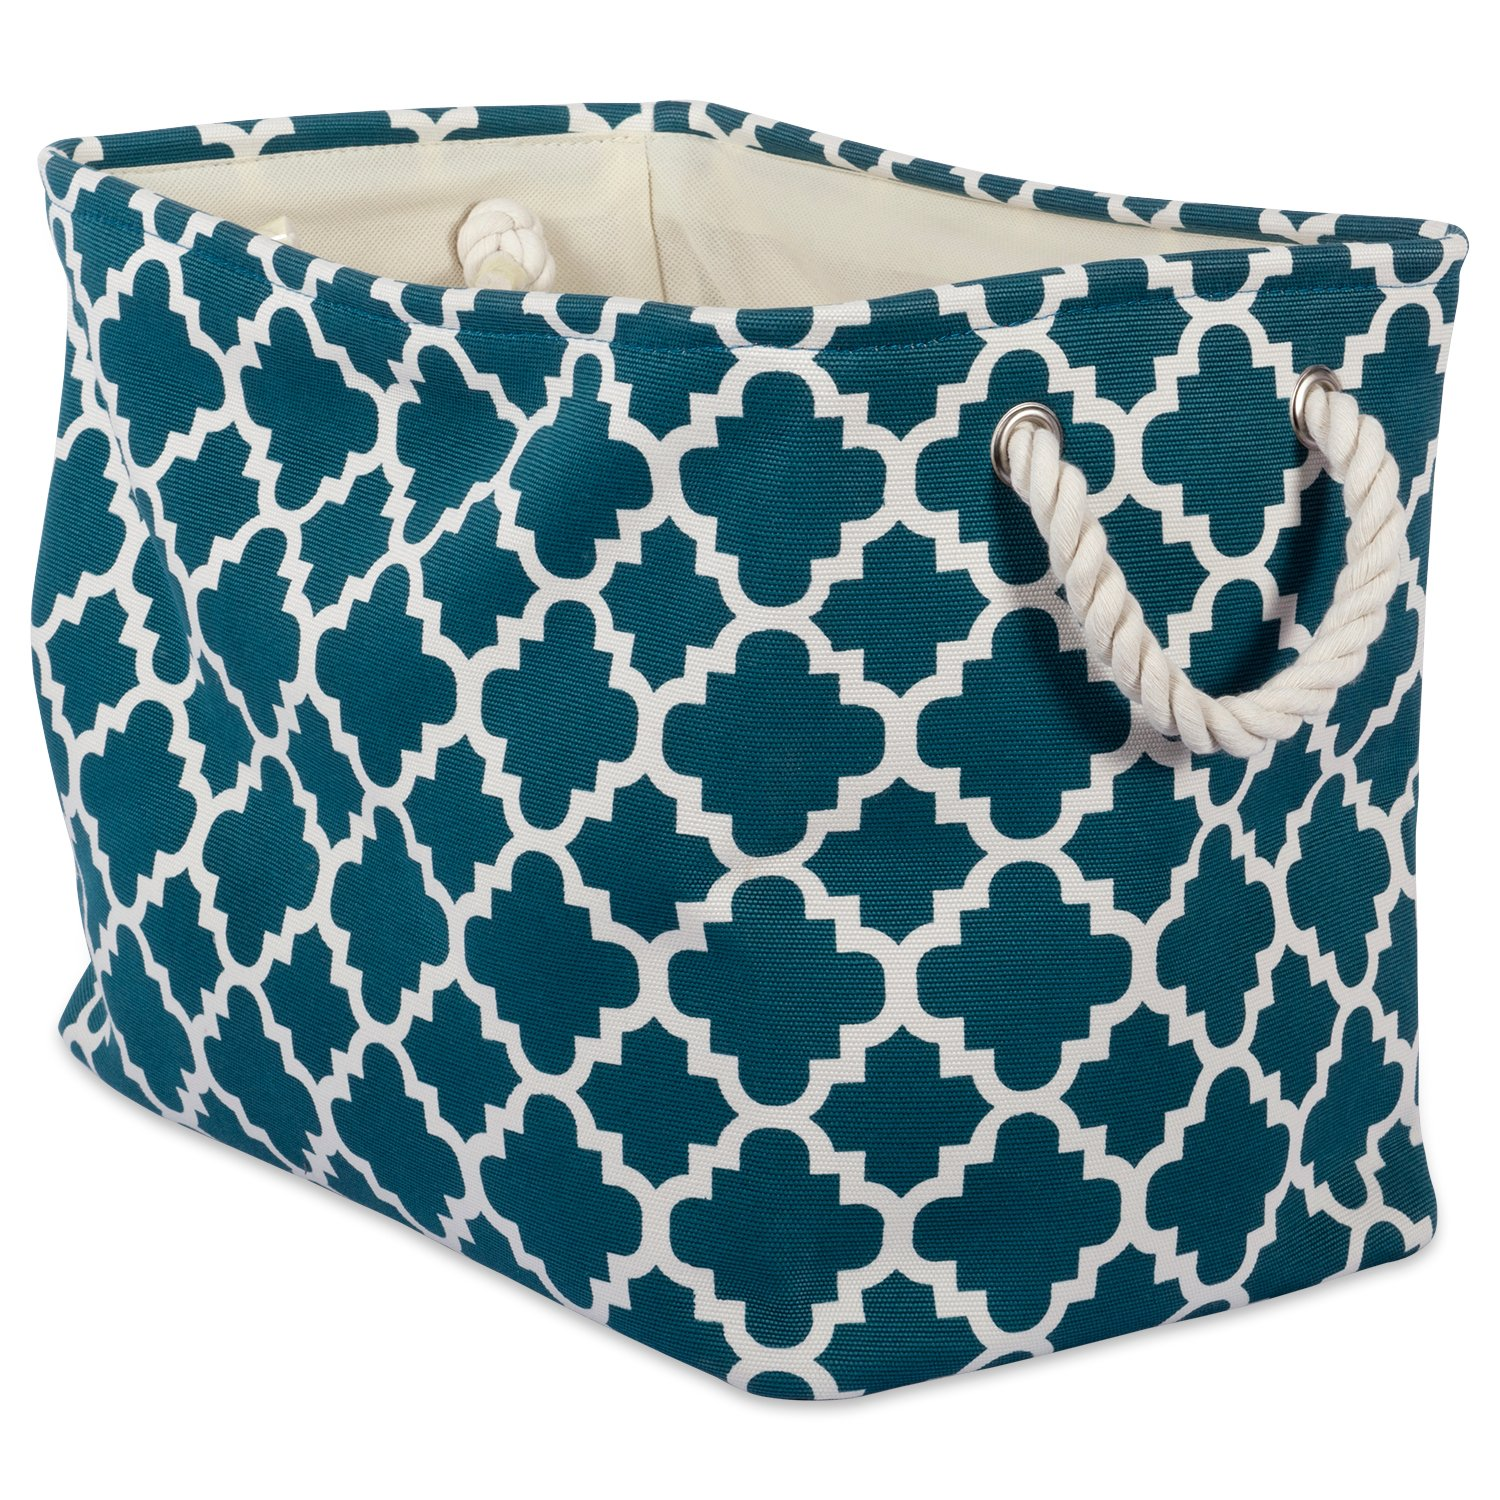 DII Printed Polyester, Collapsible and Convenient Storage Bin to Organize Office, Bedroom, Closet, Kid